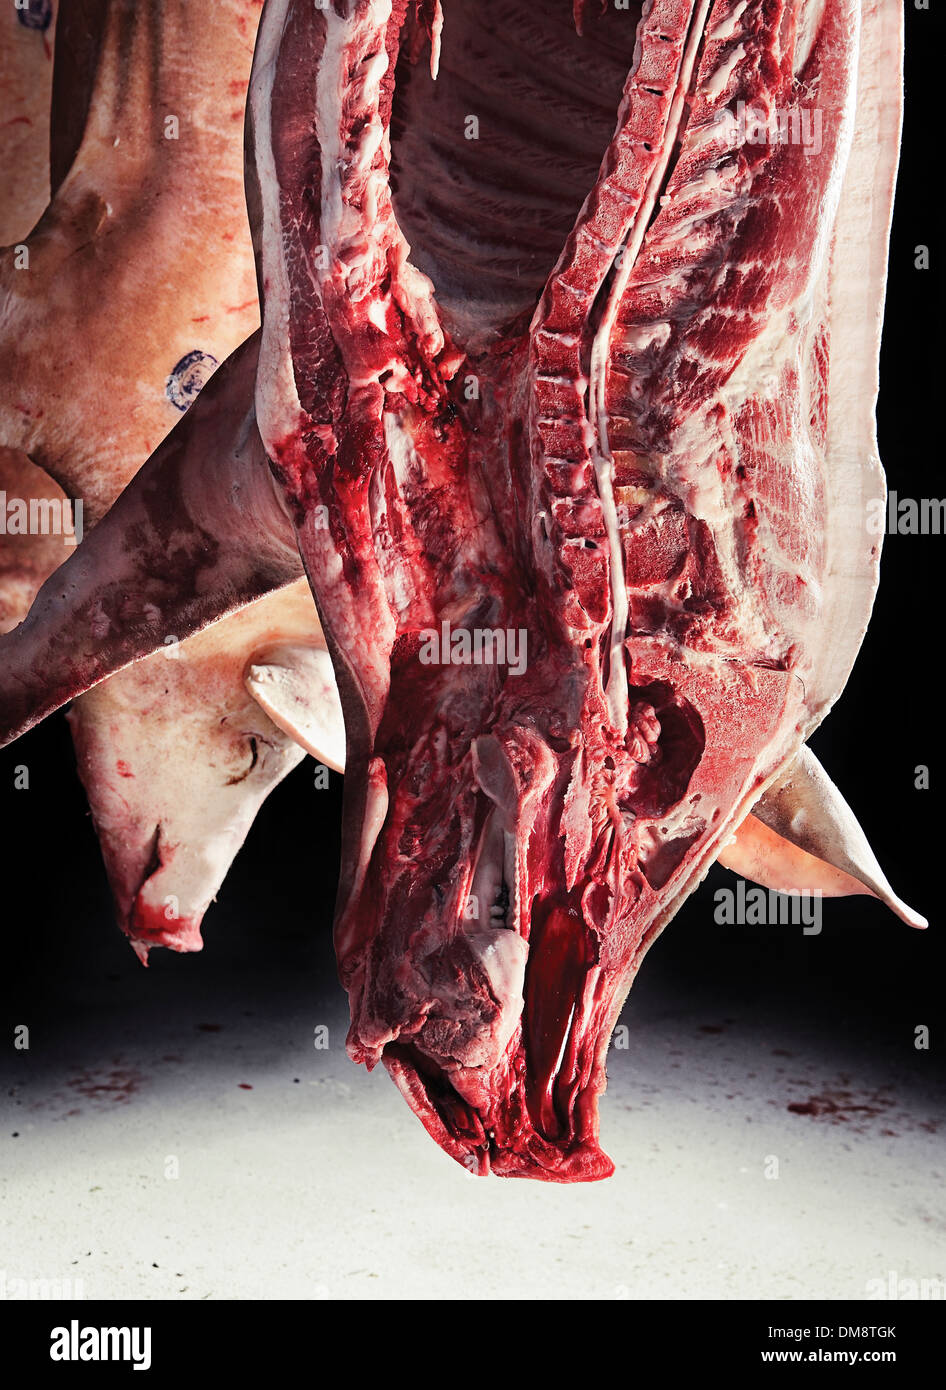 Slaughtered pig hanging - Stock Image